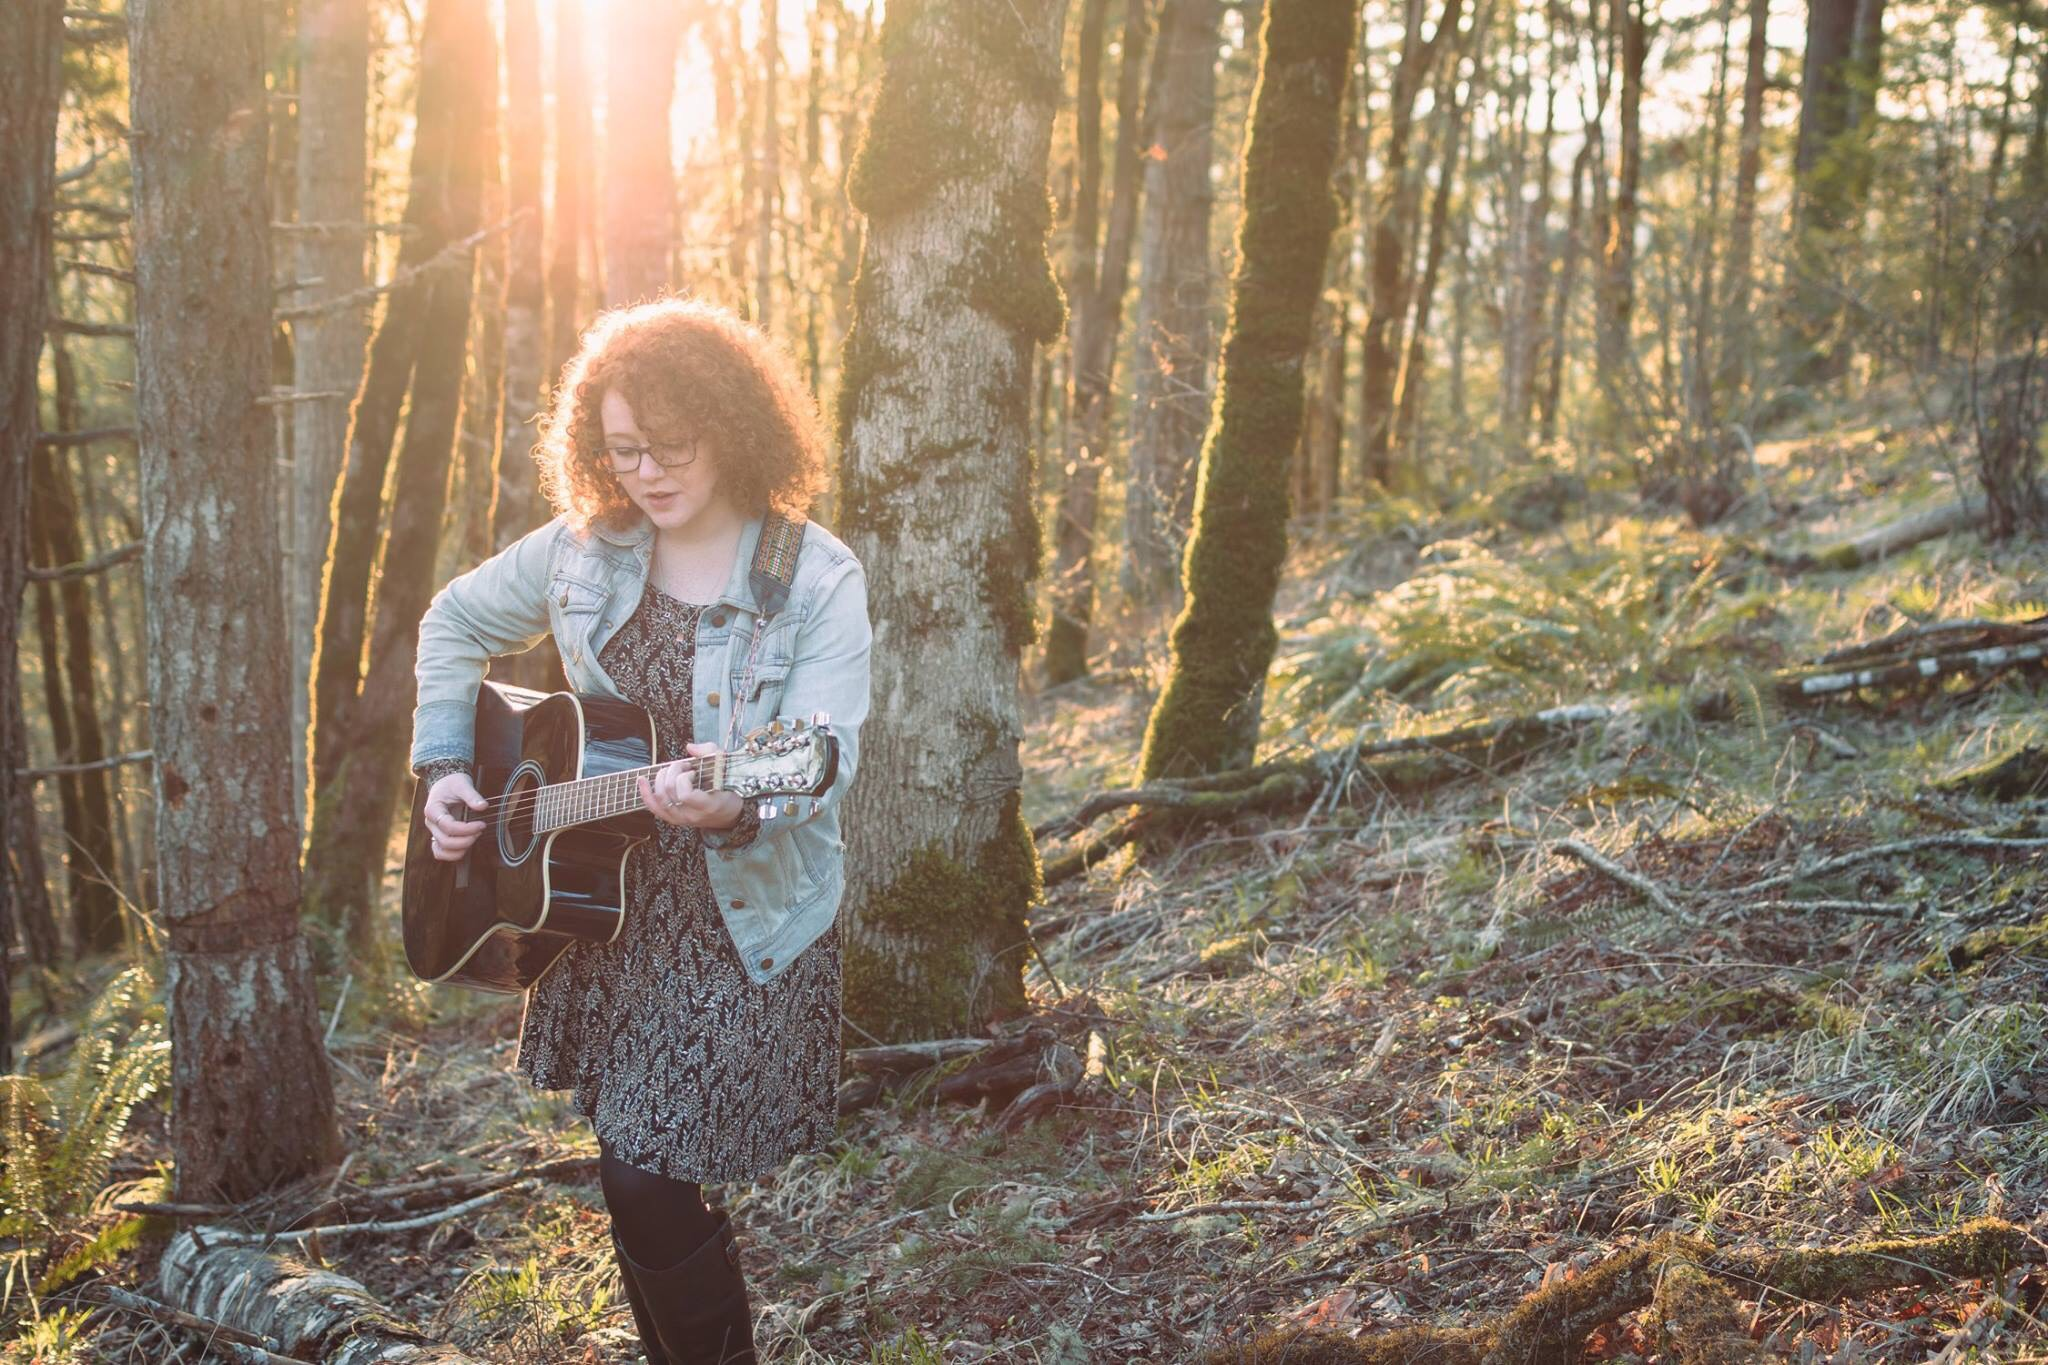 6pm -Rebecca McDade - The songs of this Scotland born & Oregon grown singer-songwriter take you all the way from Portland to Glasgow.